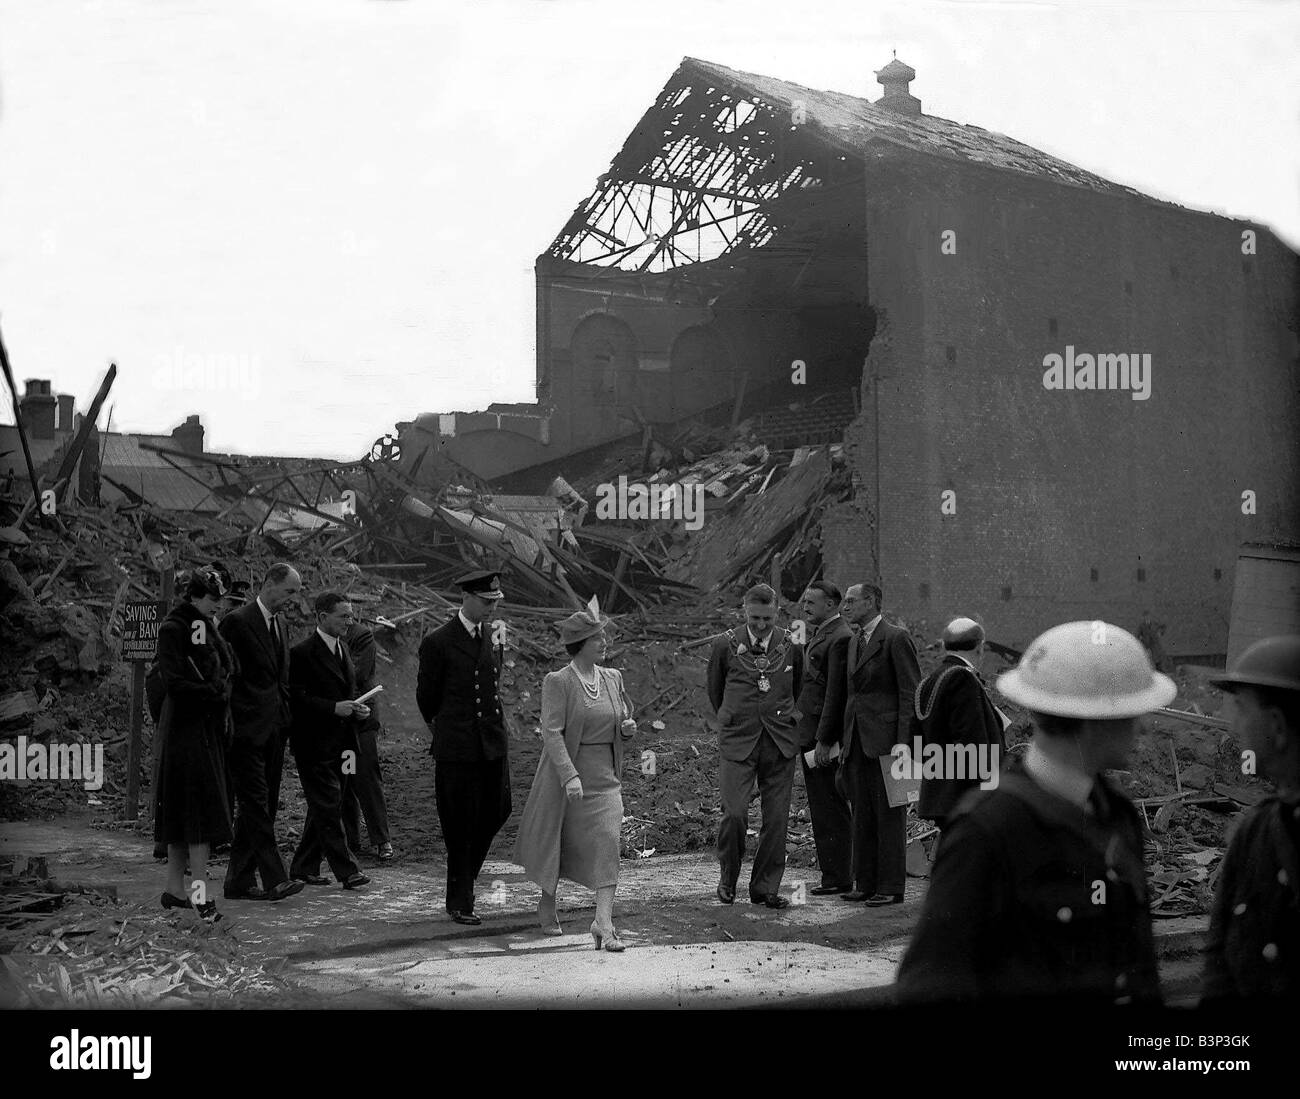 King George VI and Queen Mother visit Hull August 1941 looking at Bomb damage during WW2 - Stock Image